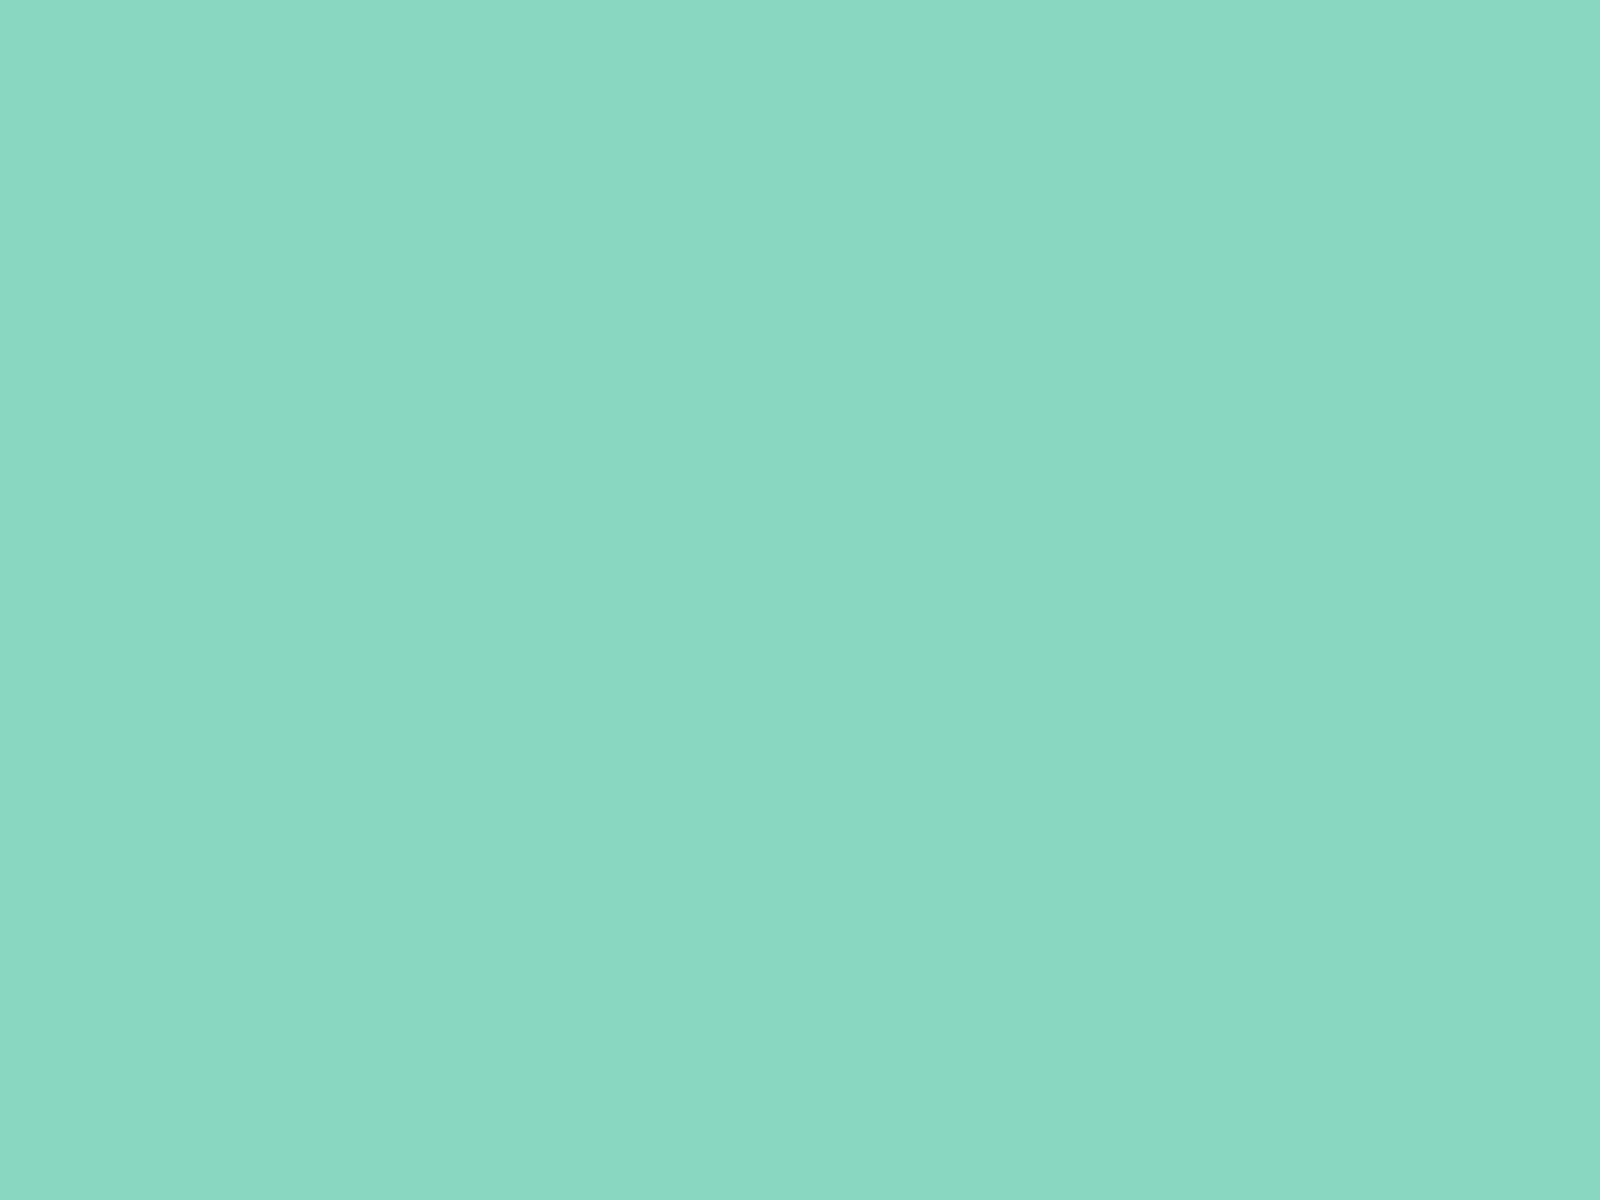 Aqua Green Wallpaper - WallpaperSafari